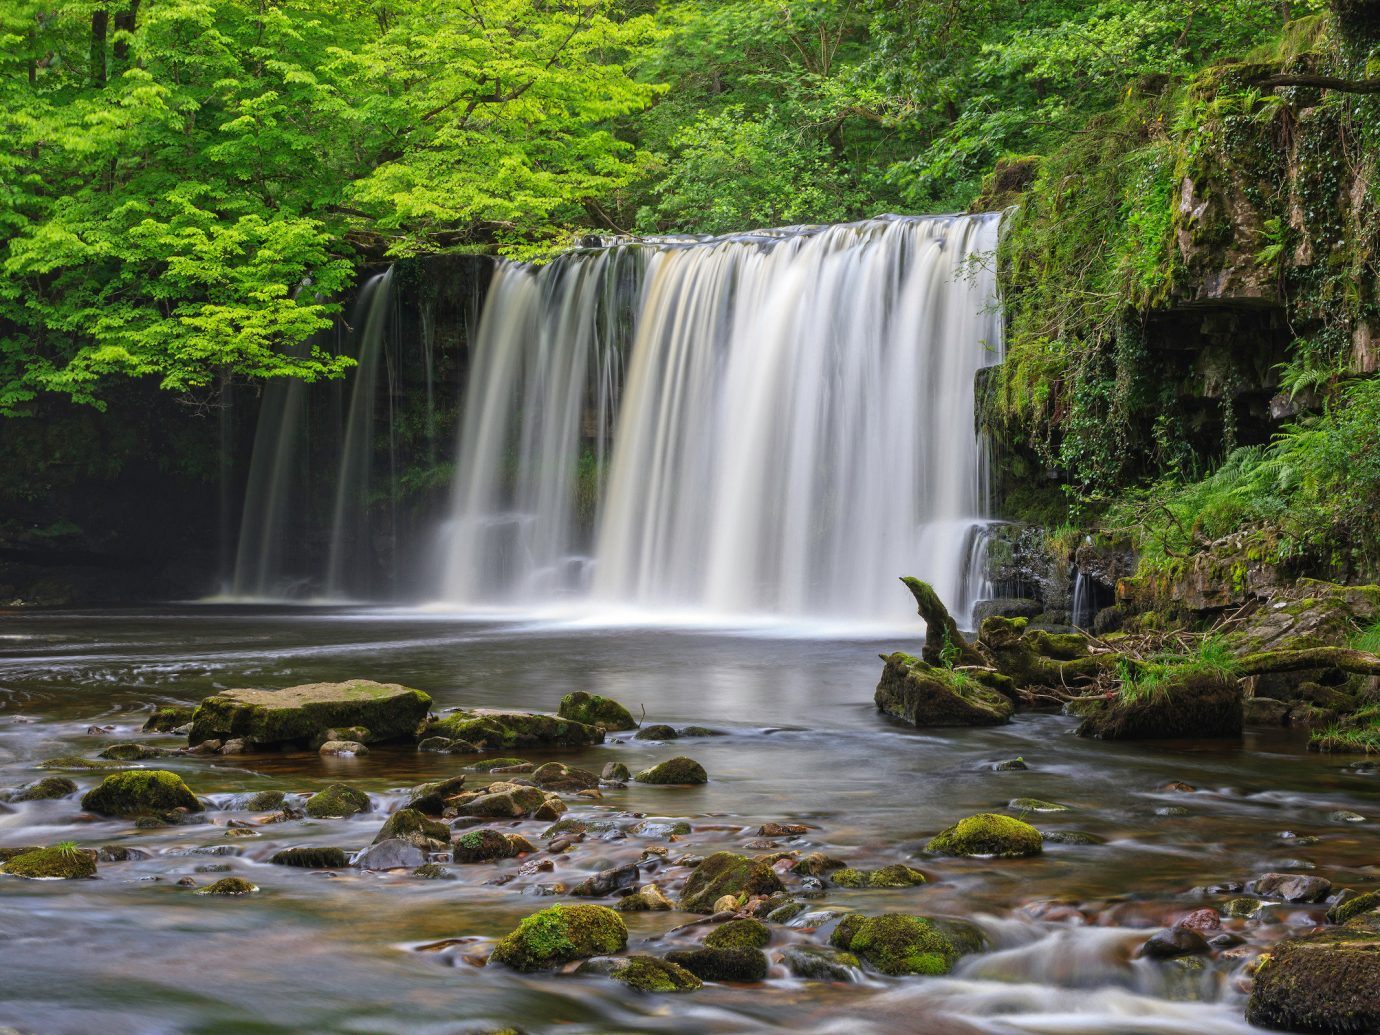 Jetsetter Guides Nature tree Waterfall water outdoor habitat body of water natural environment watercourse water feature creek stream River Forest rainforest wasserfall Jungle autumn national park